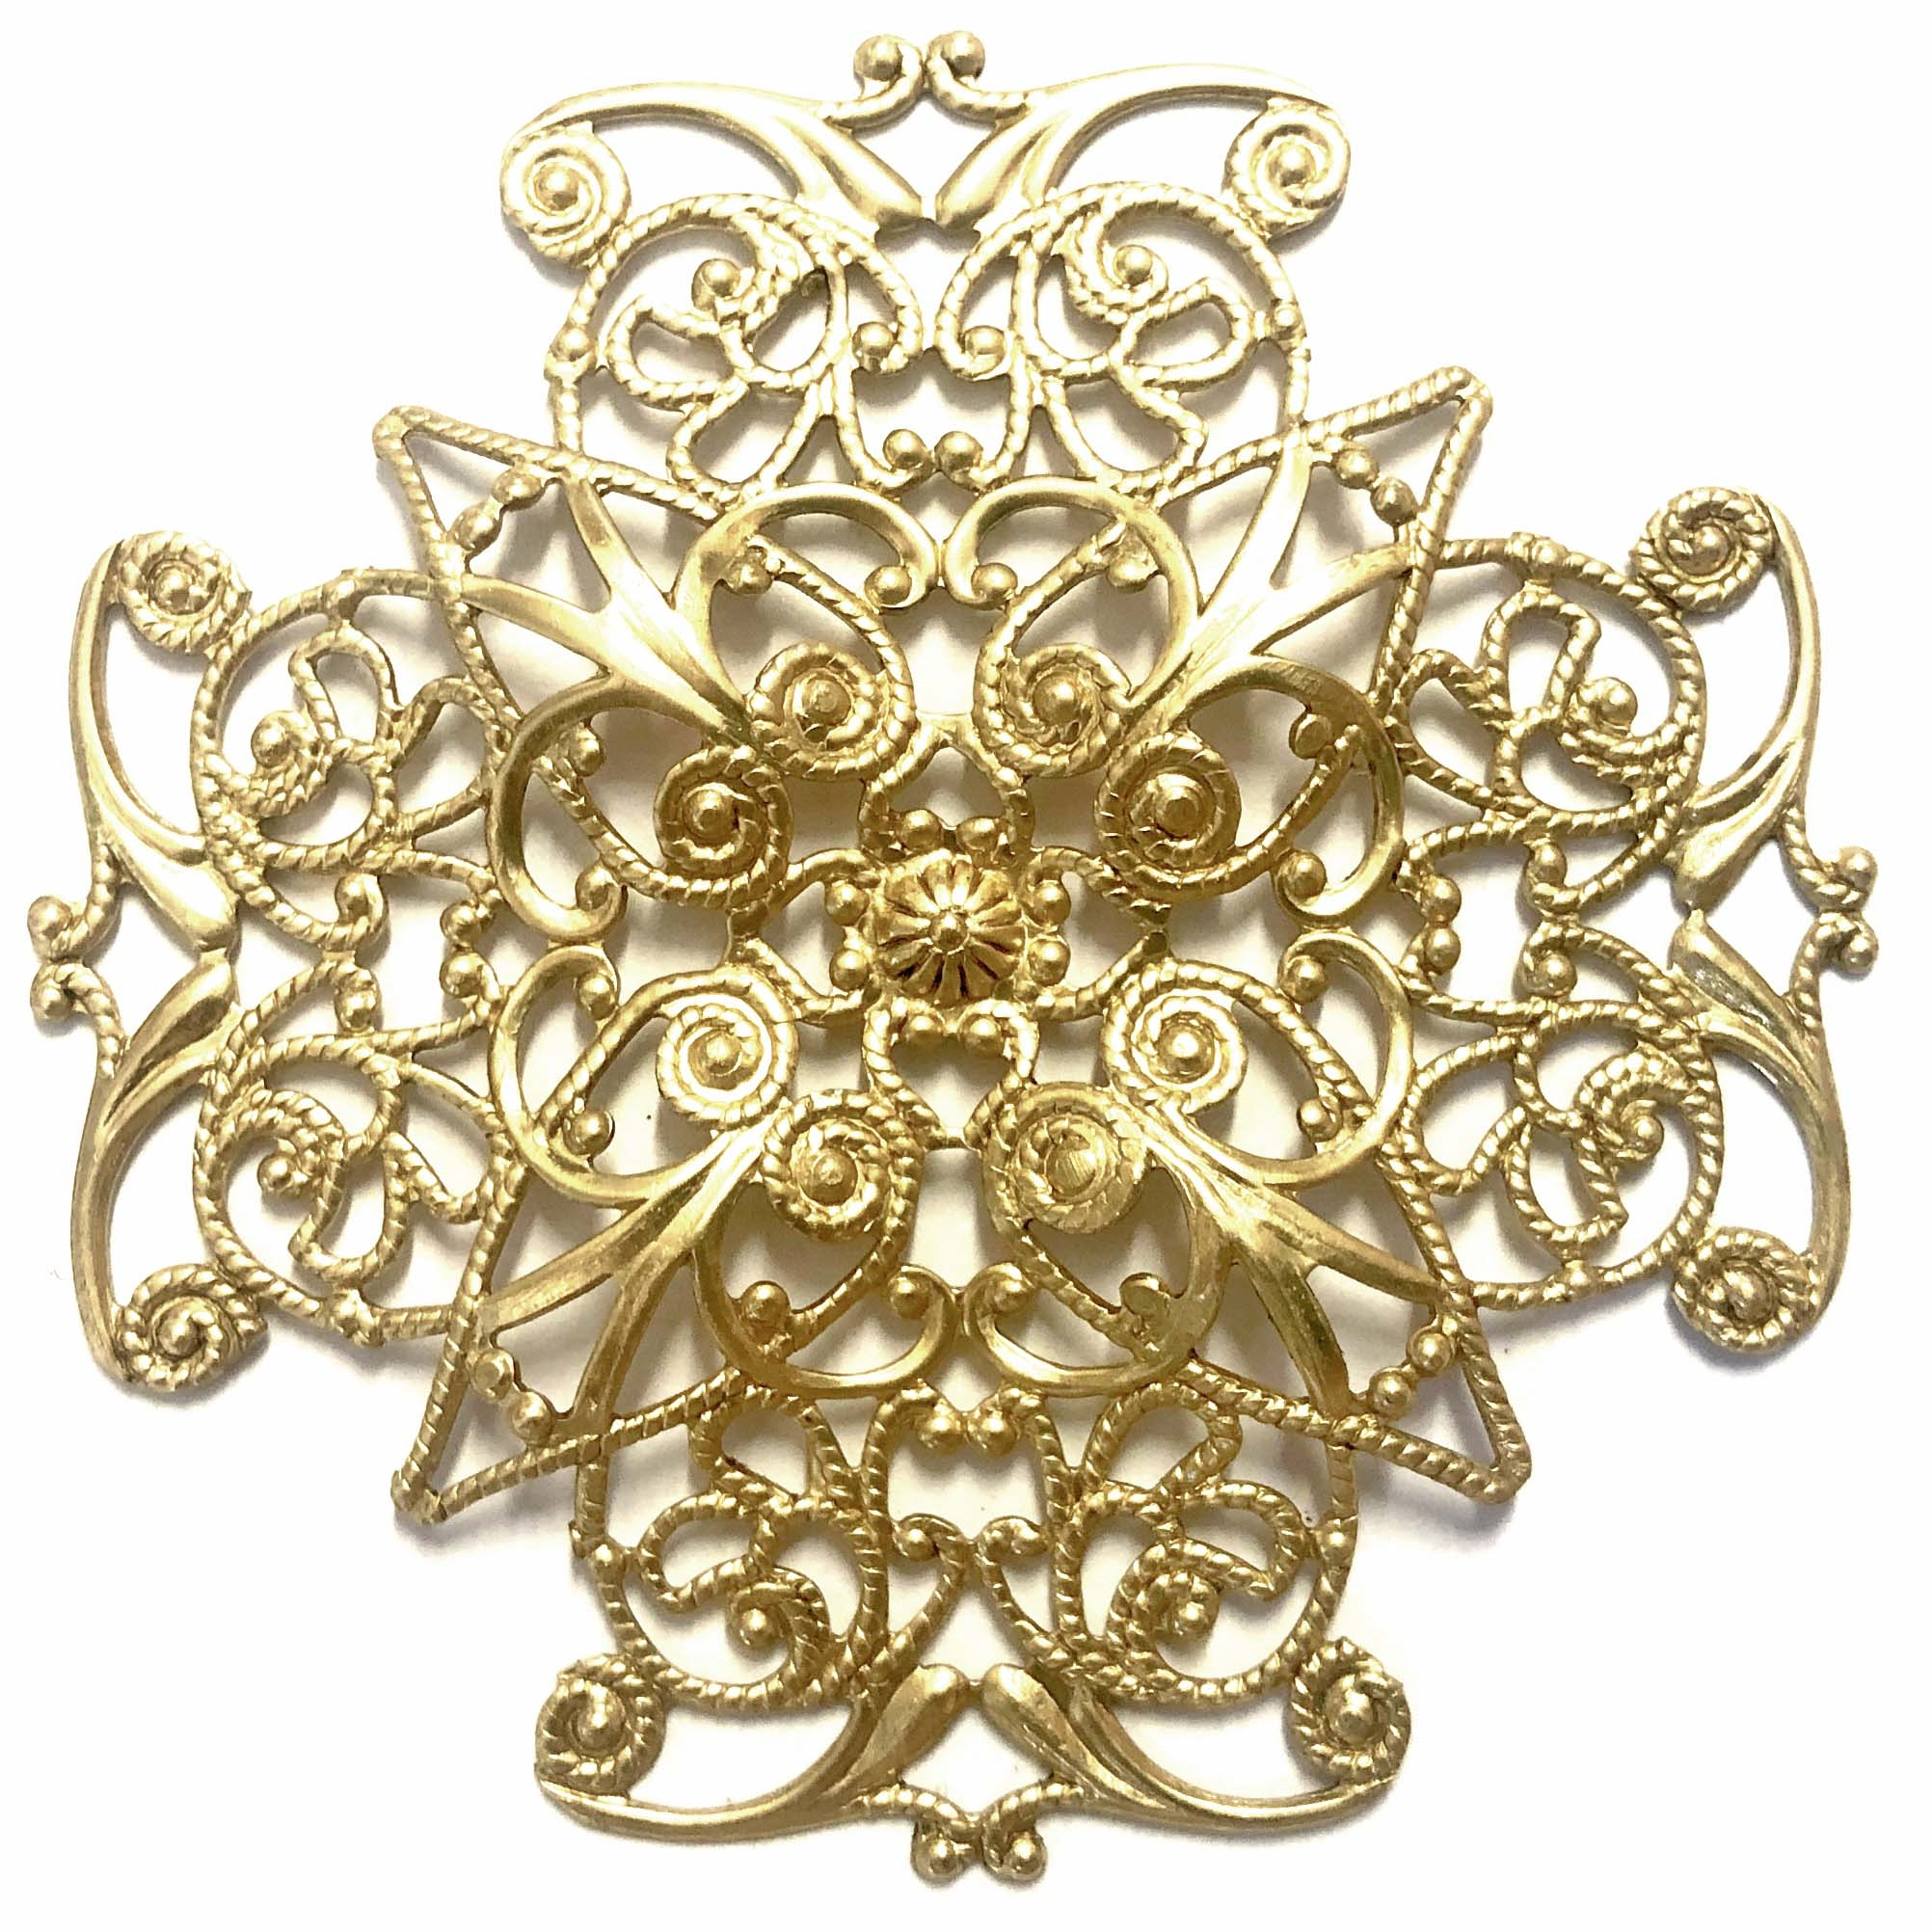 Brass Filigree, Large X-Shaped Style, Raw Brass, 62mm